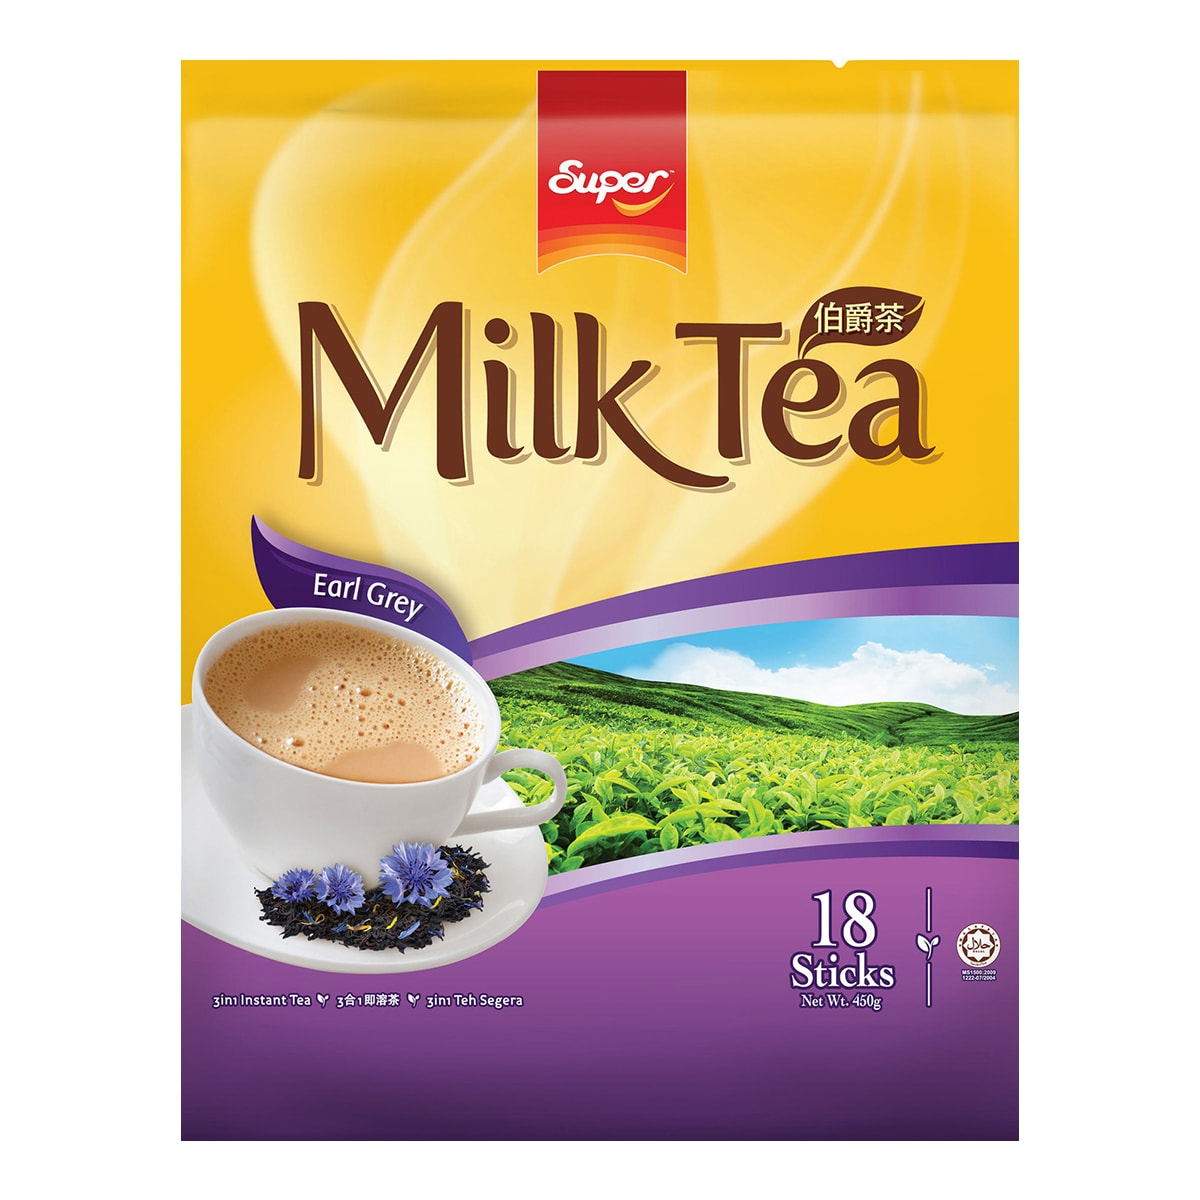 SUPER Earl Grey Milk Tea 450g 18sticks 450g